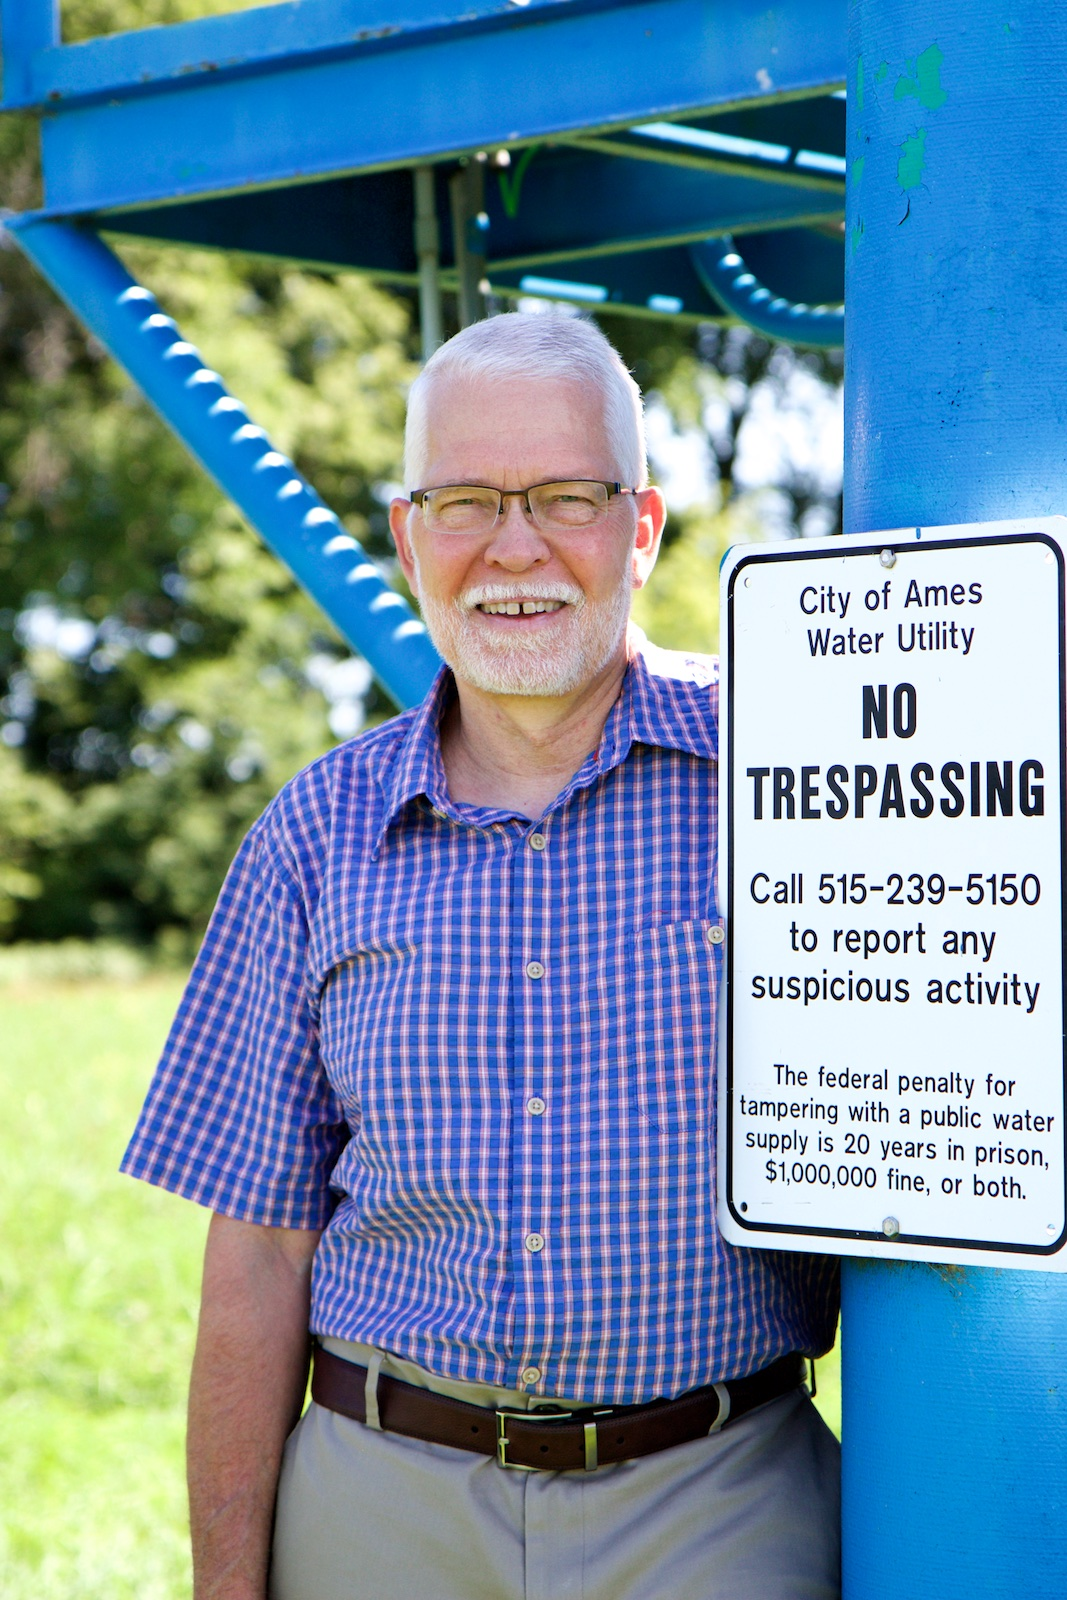 Portrait style photo of Bill Simpkins next to a water utility sign.